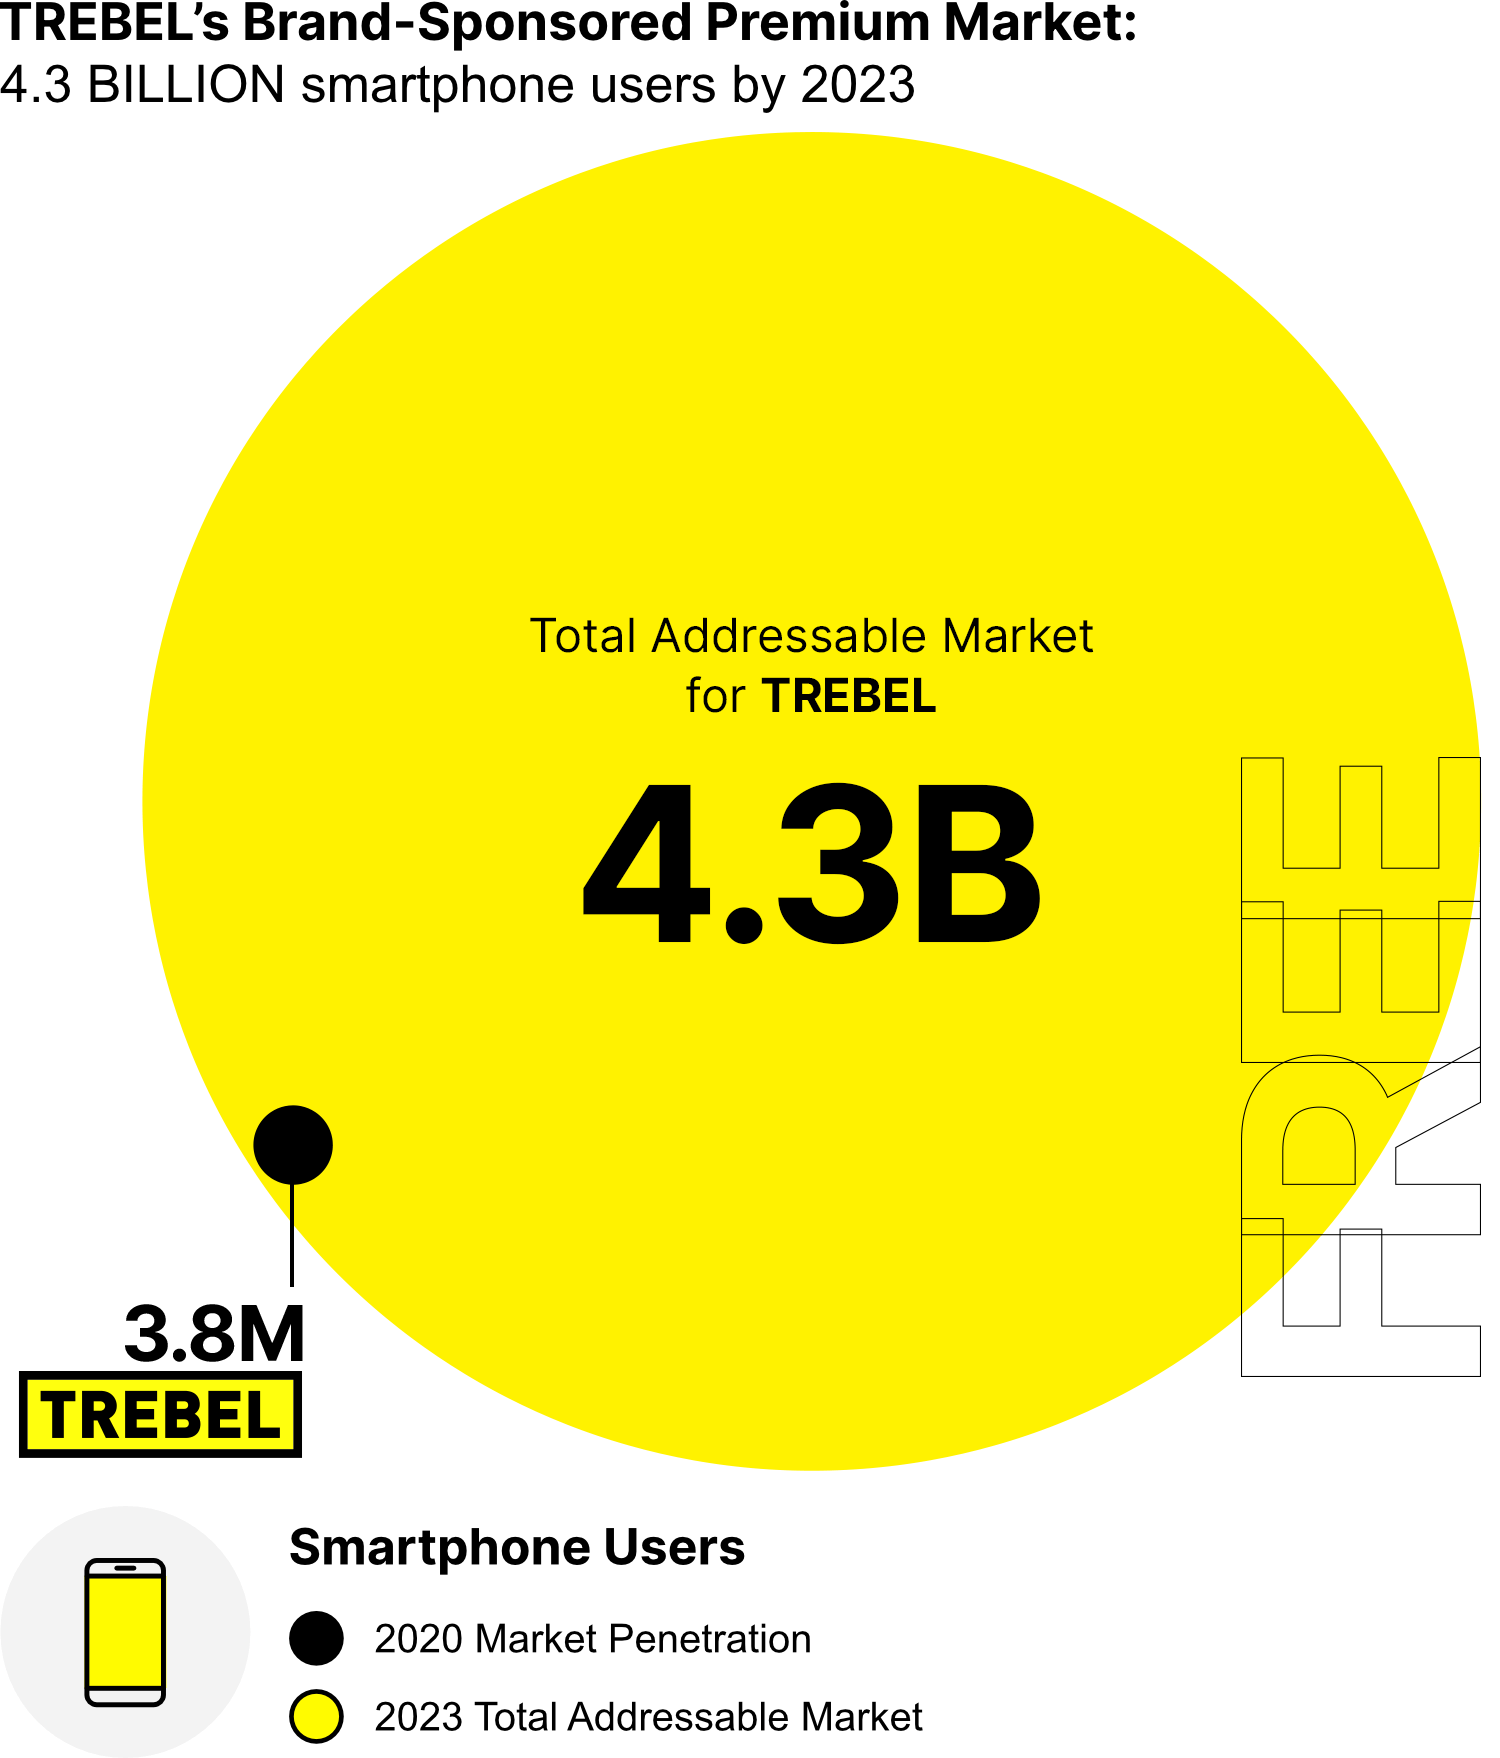 Graph showing TREBEL's addressable market growth from 2020 to 2023